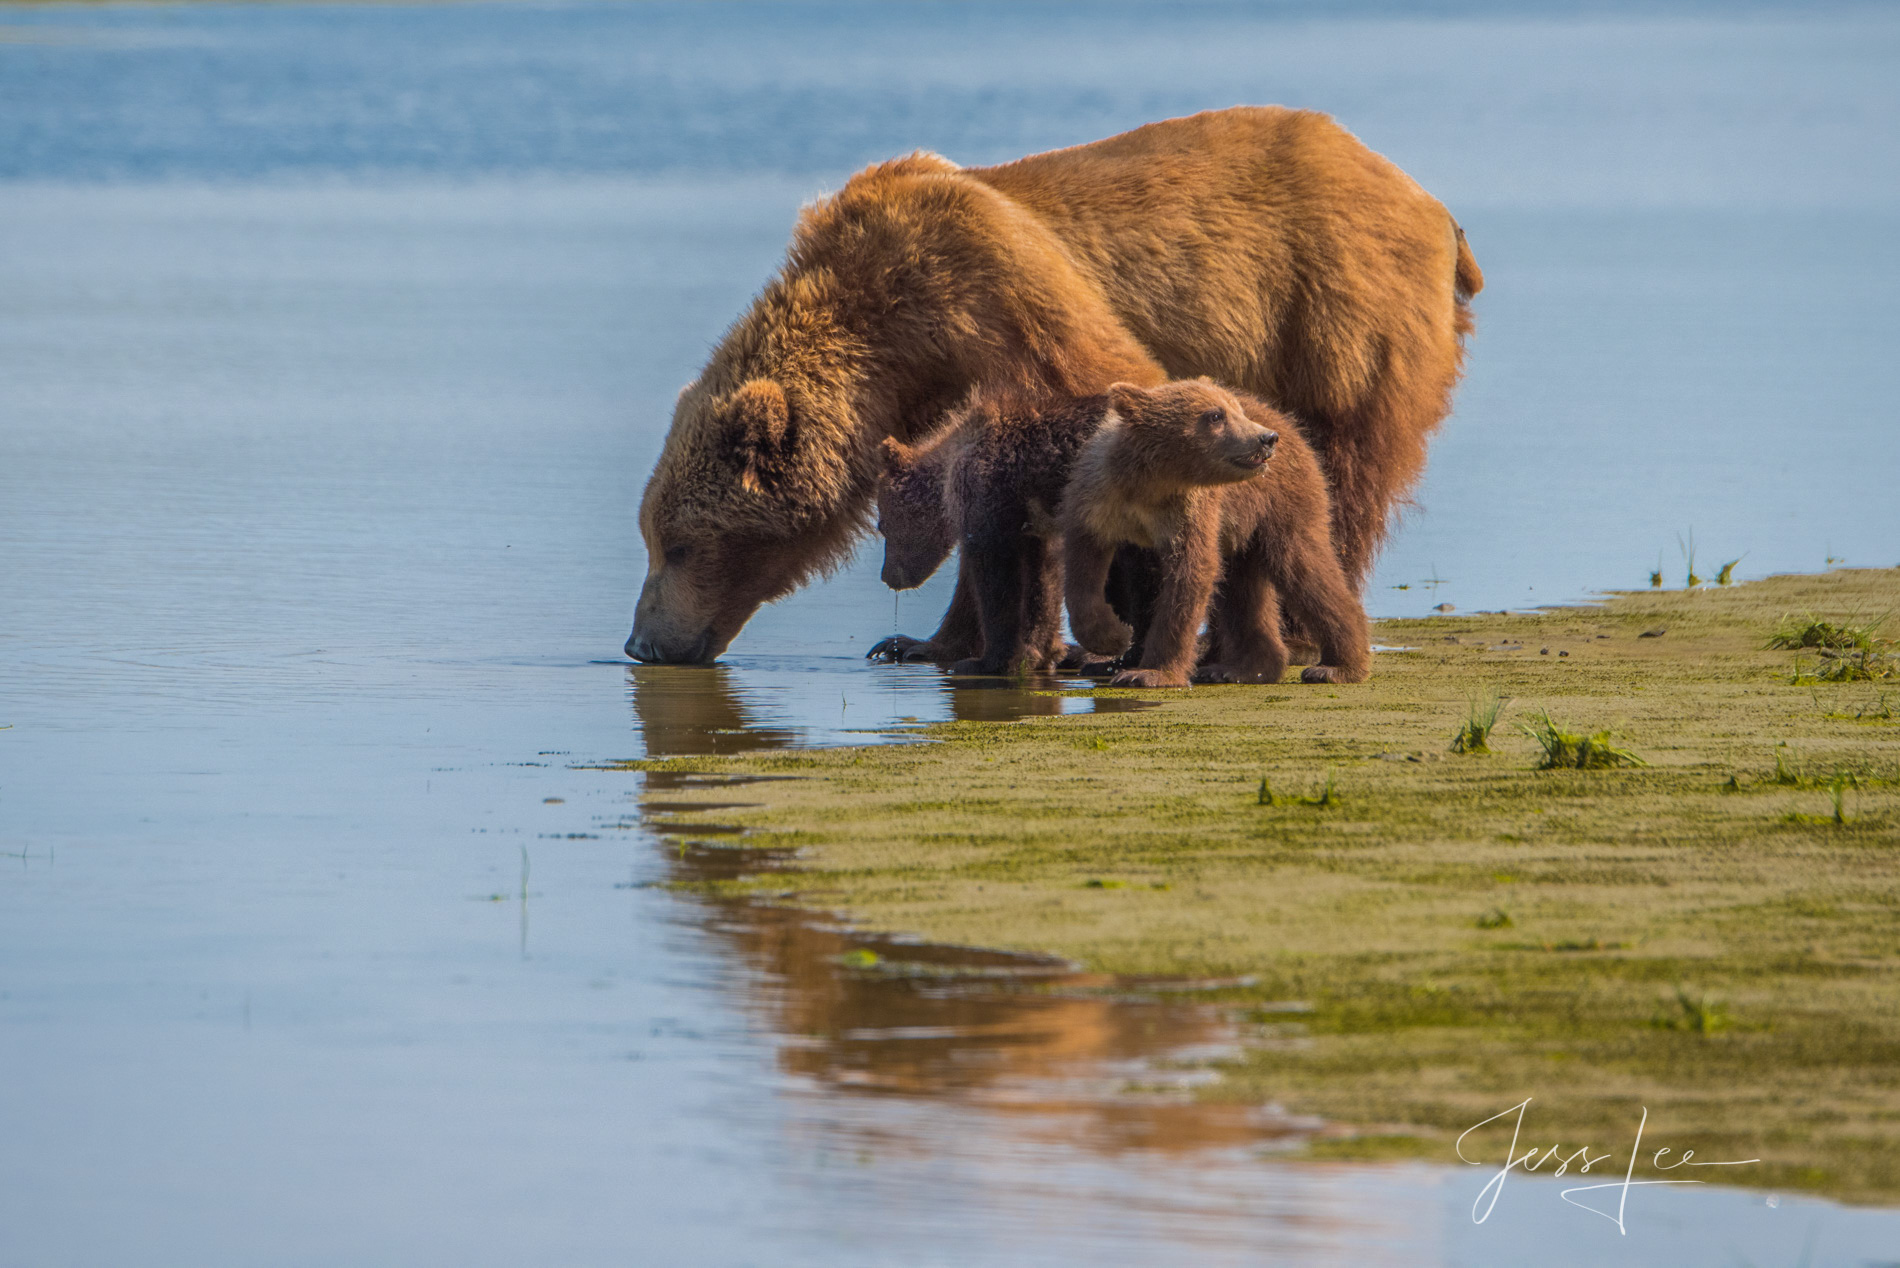 Grizzly Bear and cub drinking, fine art limited edition of 300 prints